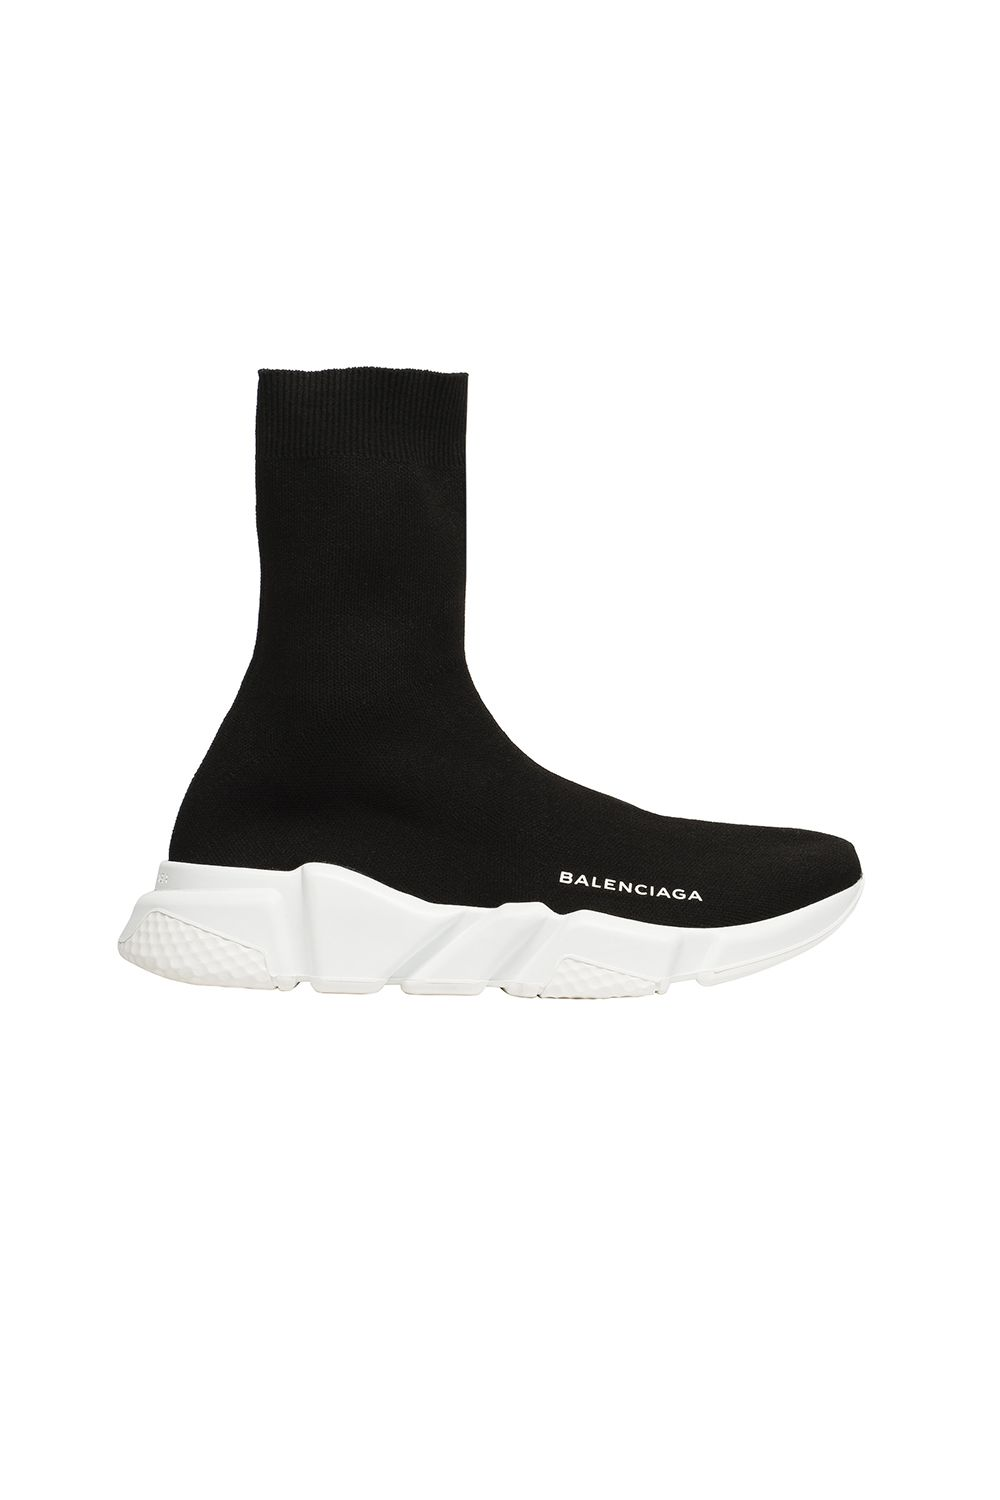 "<p>If sock boots and sneakers had a lovechild&nbsp&#x3B;it would be&nbsp&#x3B;these&nbsp&#x3B;Aquasock-like slip-ons, which lend&nbsp&#x3B;an&nbsp&#x3B;""in-the-know"" sleekness to your&nbsp&#x3B;off-duty look.</p><p><span class=""redactor-invisible-space"" data-verified=""redactor"" data-redactor-tag=""span"" data-redactor-class=""redactor-invisible-space"">$565,</span>&nbsp&#x3B;<a href=""http://www.balenciaga.com"" target=""_blank"" data-tracking-id=""recirc-text-link"">balenciaga.com.</a><span class=""redactor-invisible-space"" data-verified=""redactor"" data-redactor-tag=""span"" data-redactor-class=""redactor-invisible-space""></span></p>"